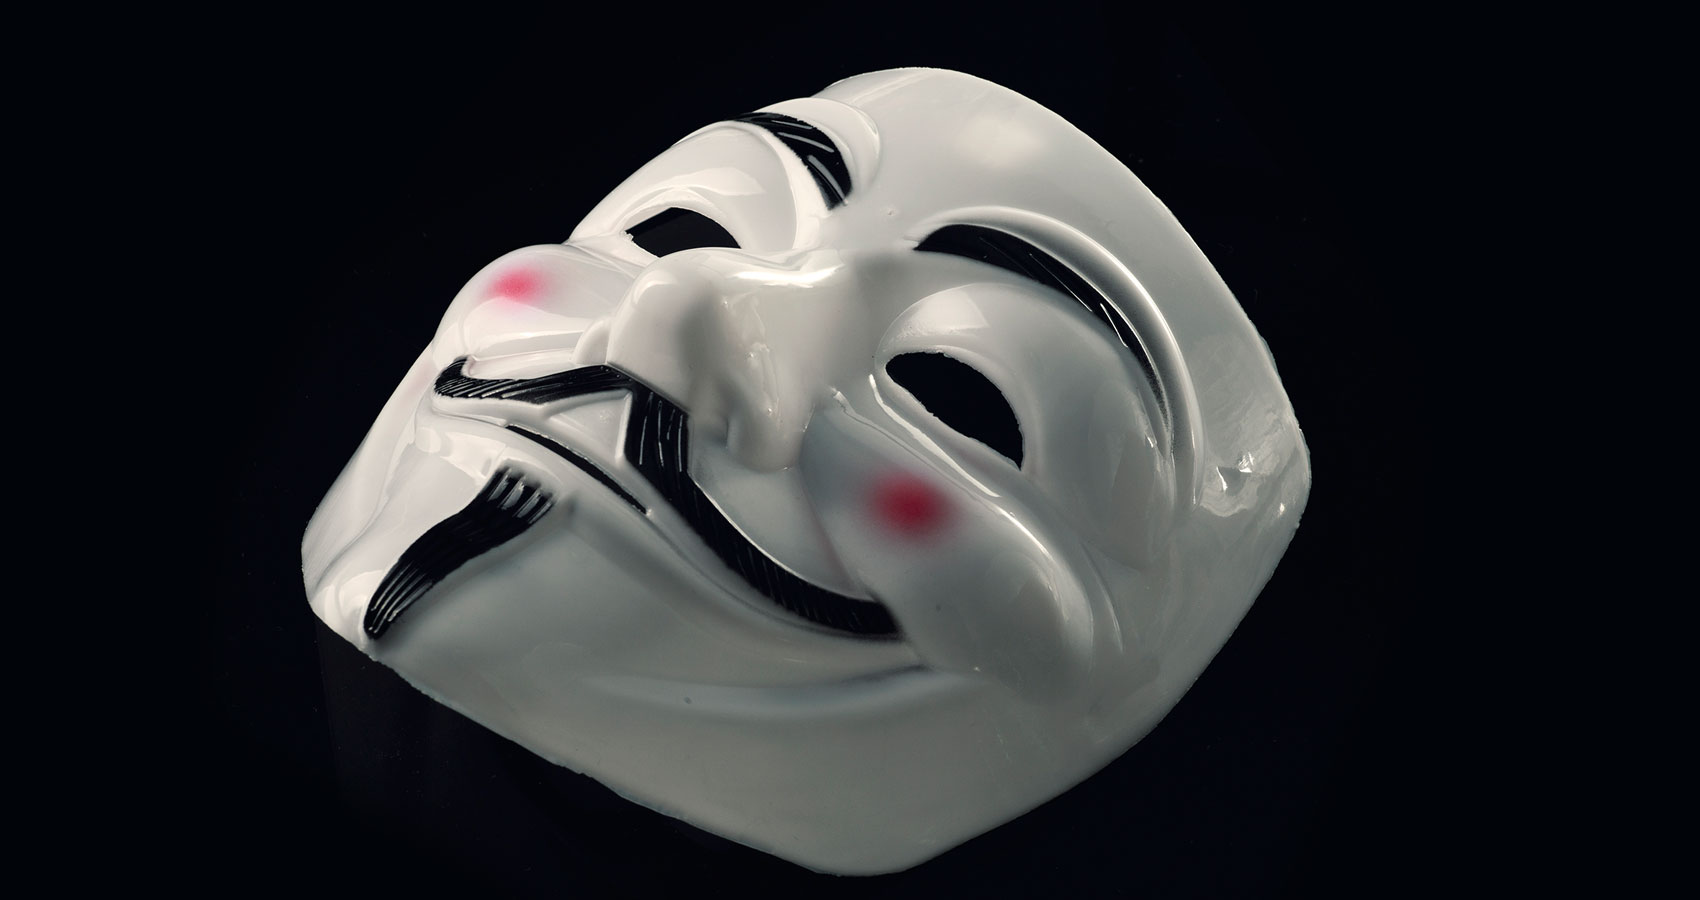 We Wear The Mask, a poem by Paul Laurence Dunbar at Spillwords.com